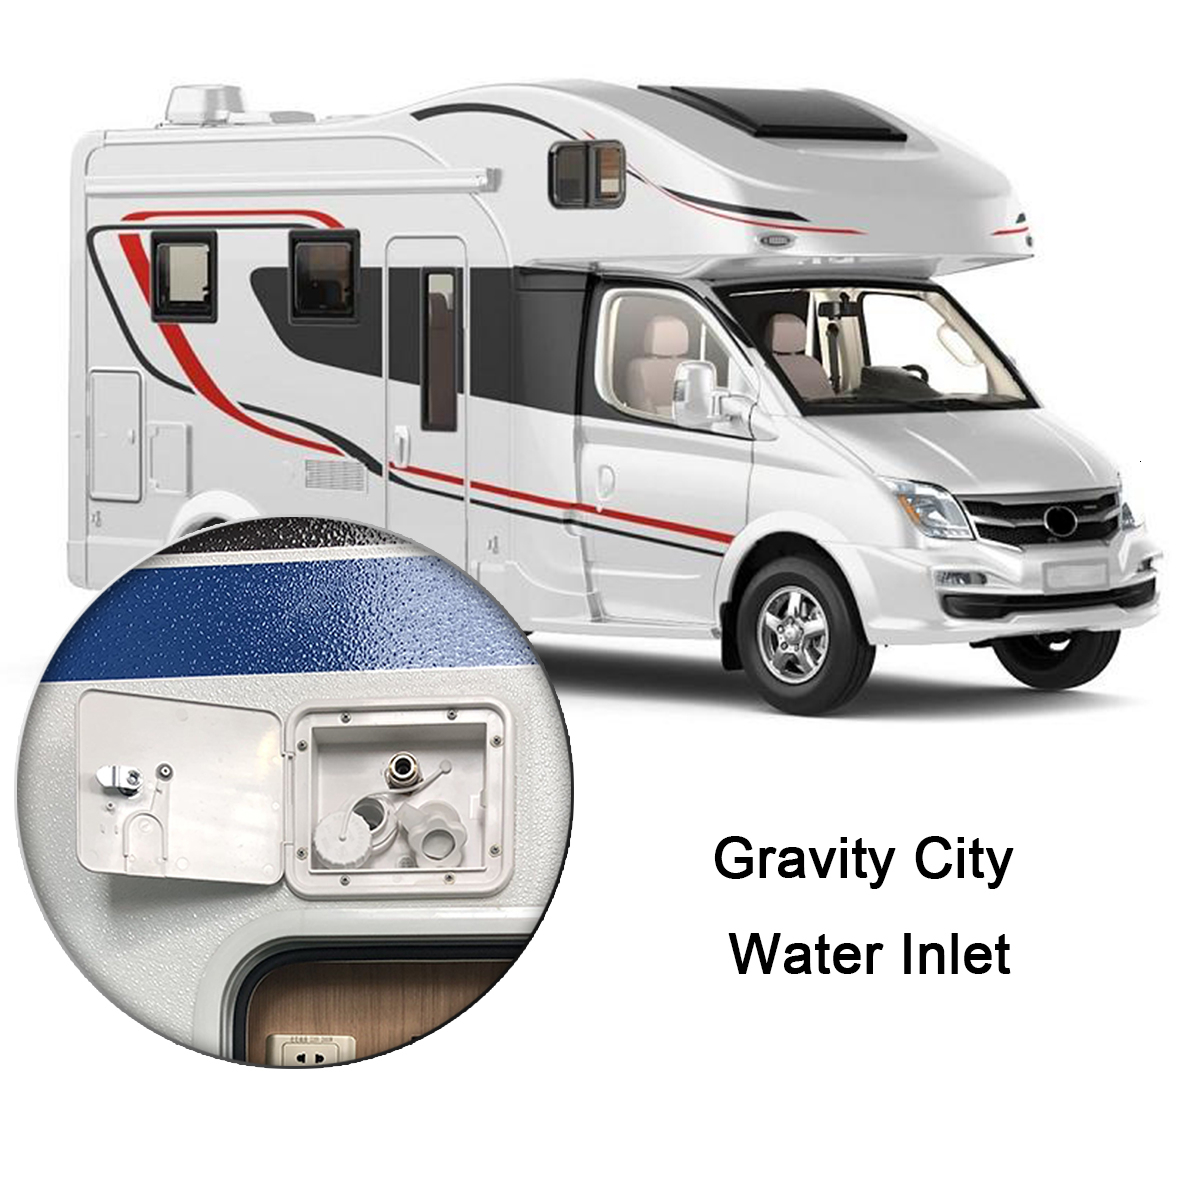 White Gravity City Water Inlet Integrated Fill Dish Hatch Lock For RV Trailer Car